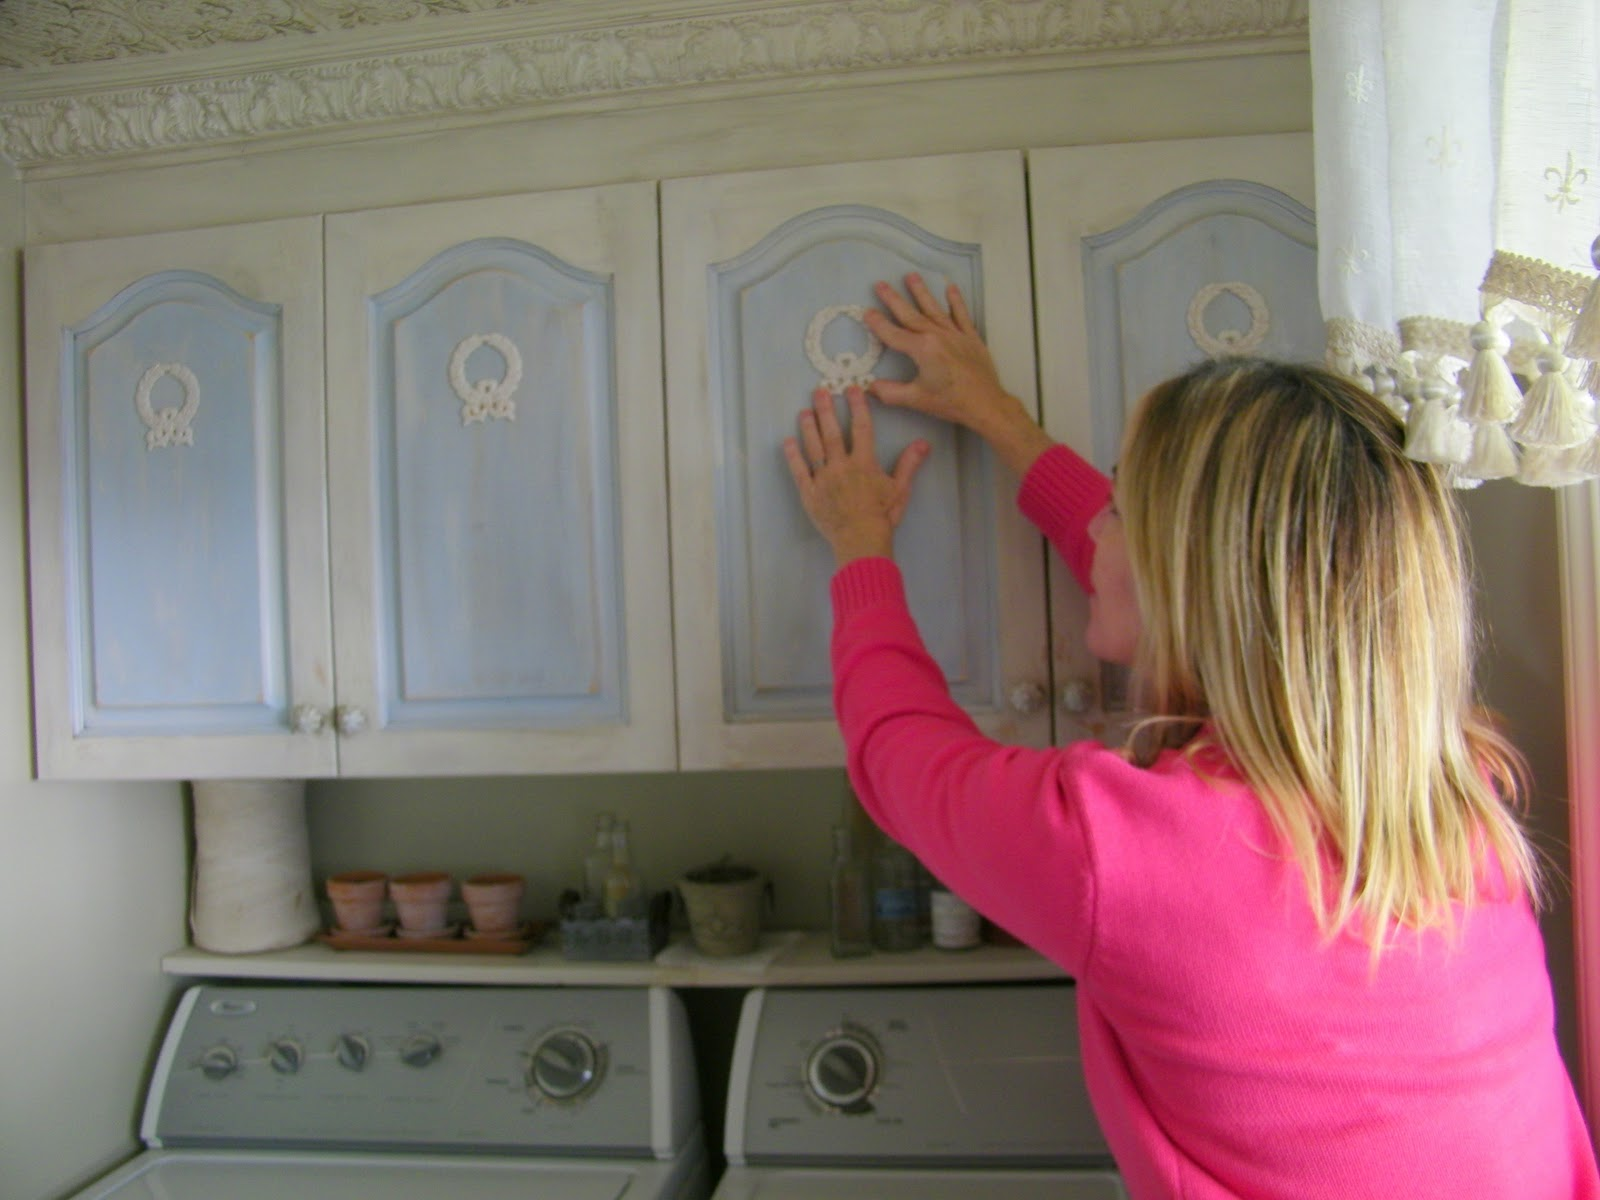 Interior Kitchen Cabinet Appliques kitchen cabinet wood appliques trekkerboy for cabinets